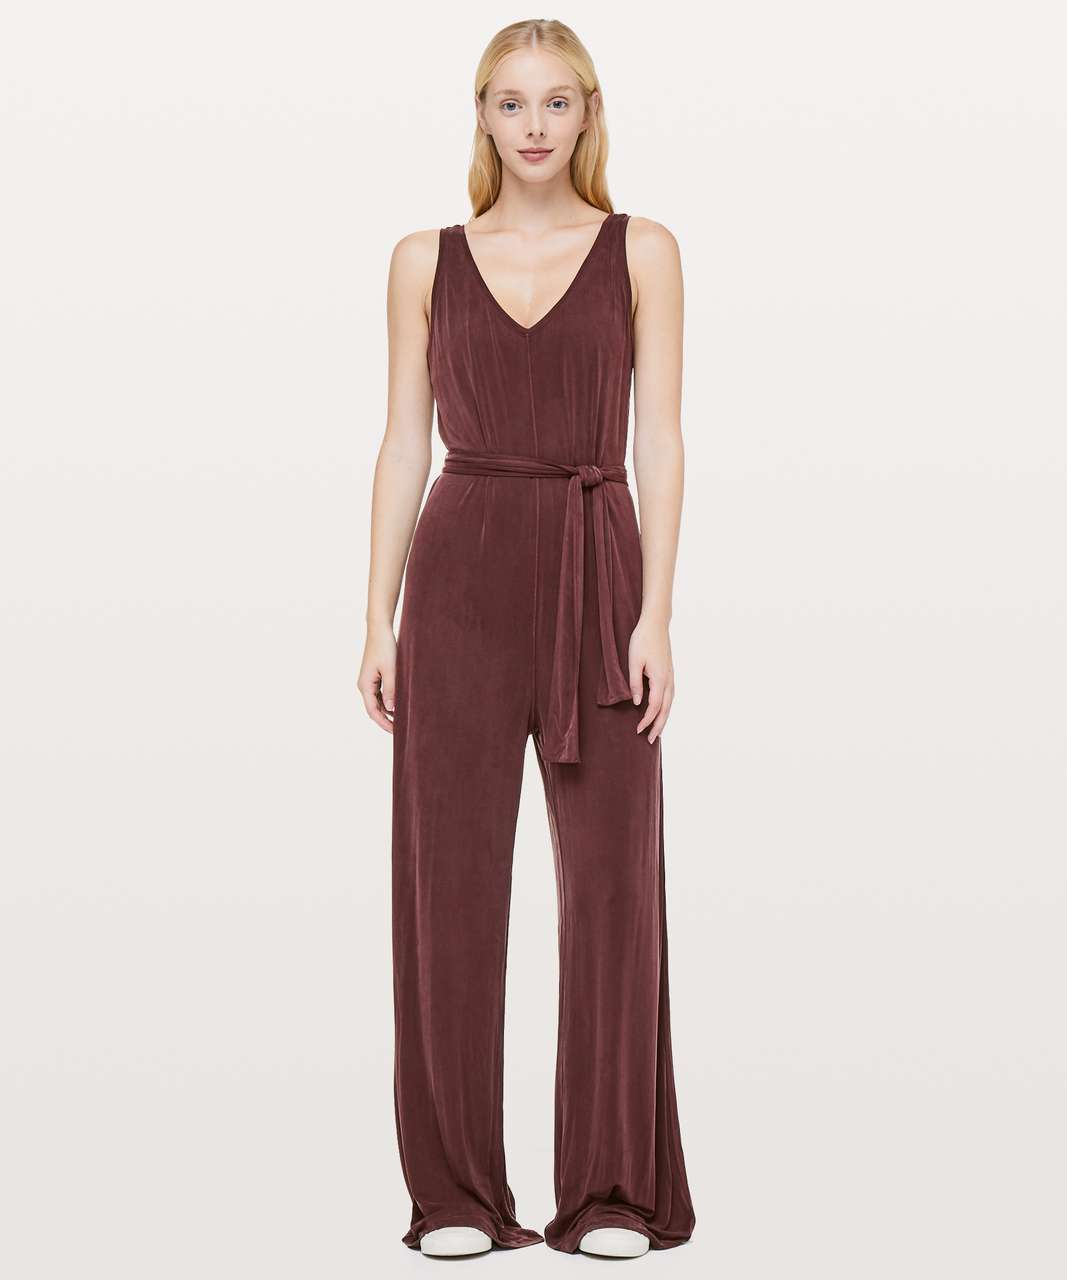 "Lululemon Principal Dancer Jumpsuit *31"" - Midnight Maroon"